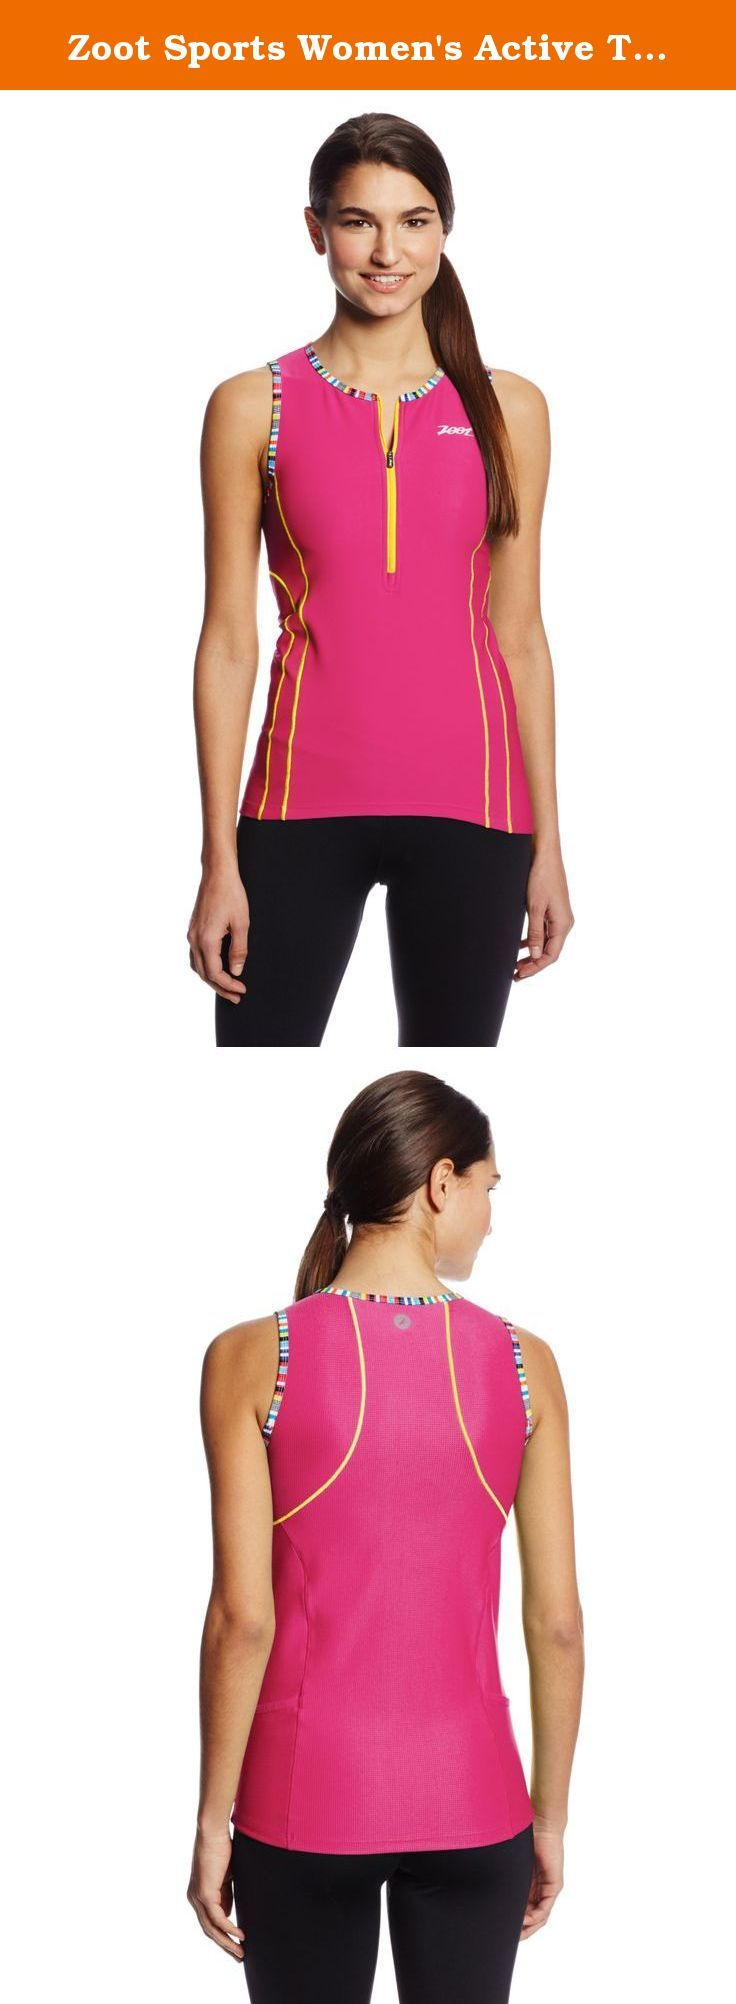 Zoot Sports Women's Active Tri Mesh Tank, Beet/Flash, Medium. By design races are long and hard. And, by design, Zoot's triathlon apparel keeps you supported through all of it.